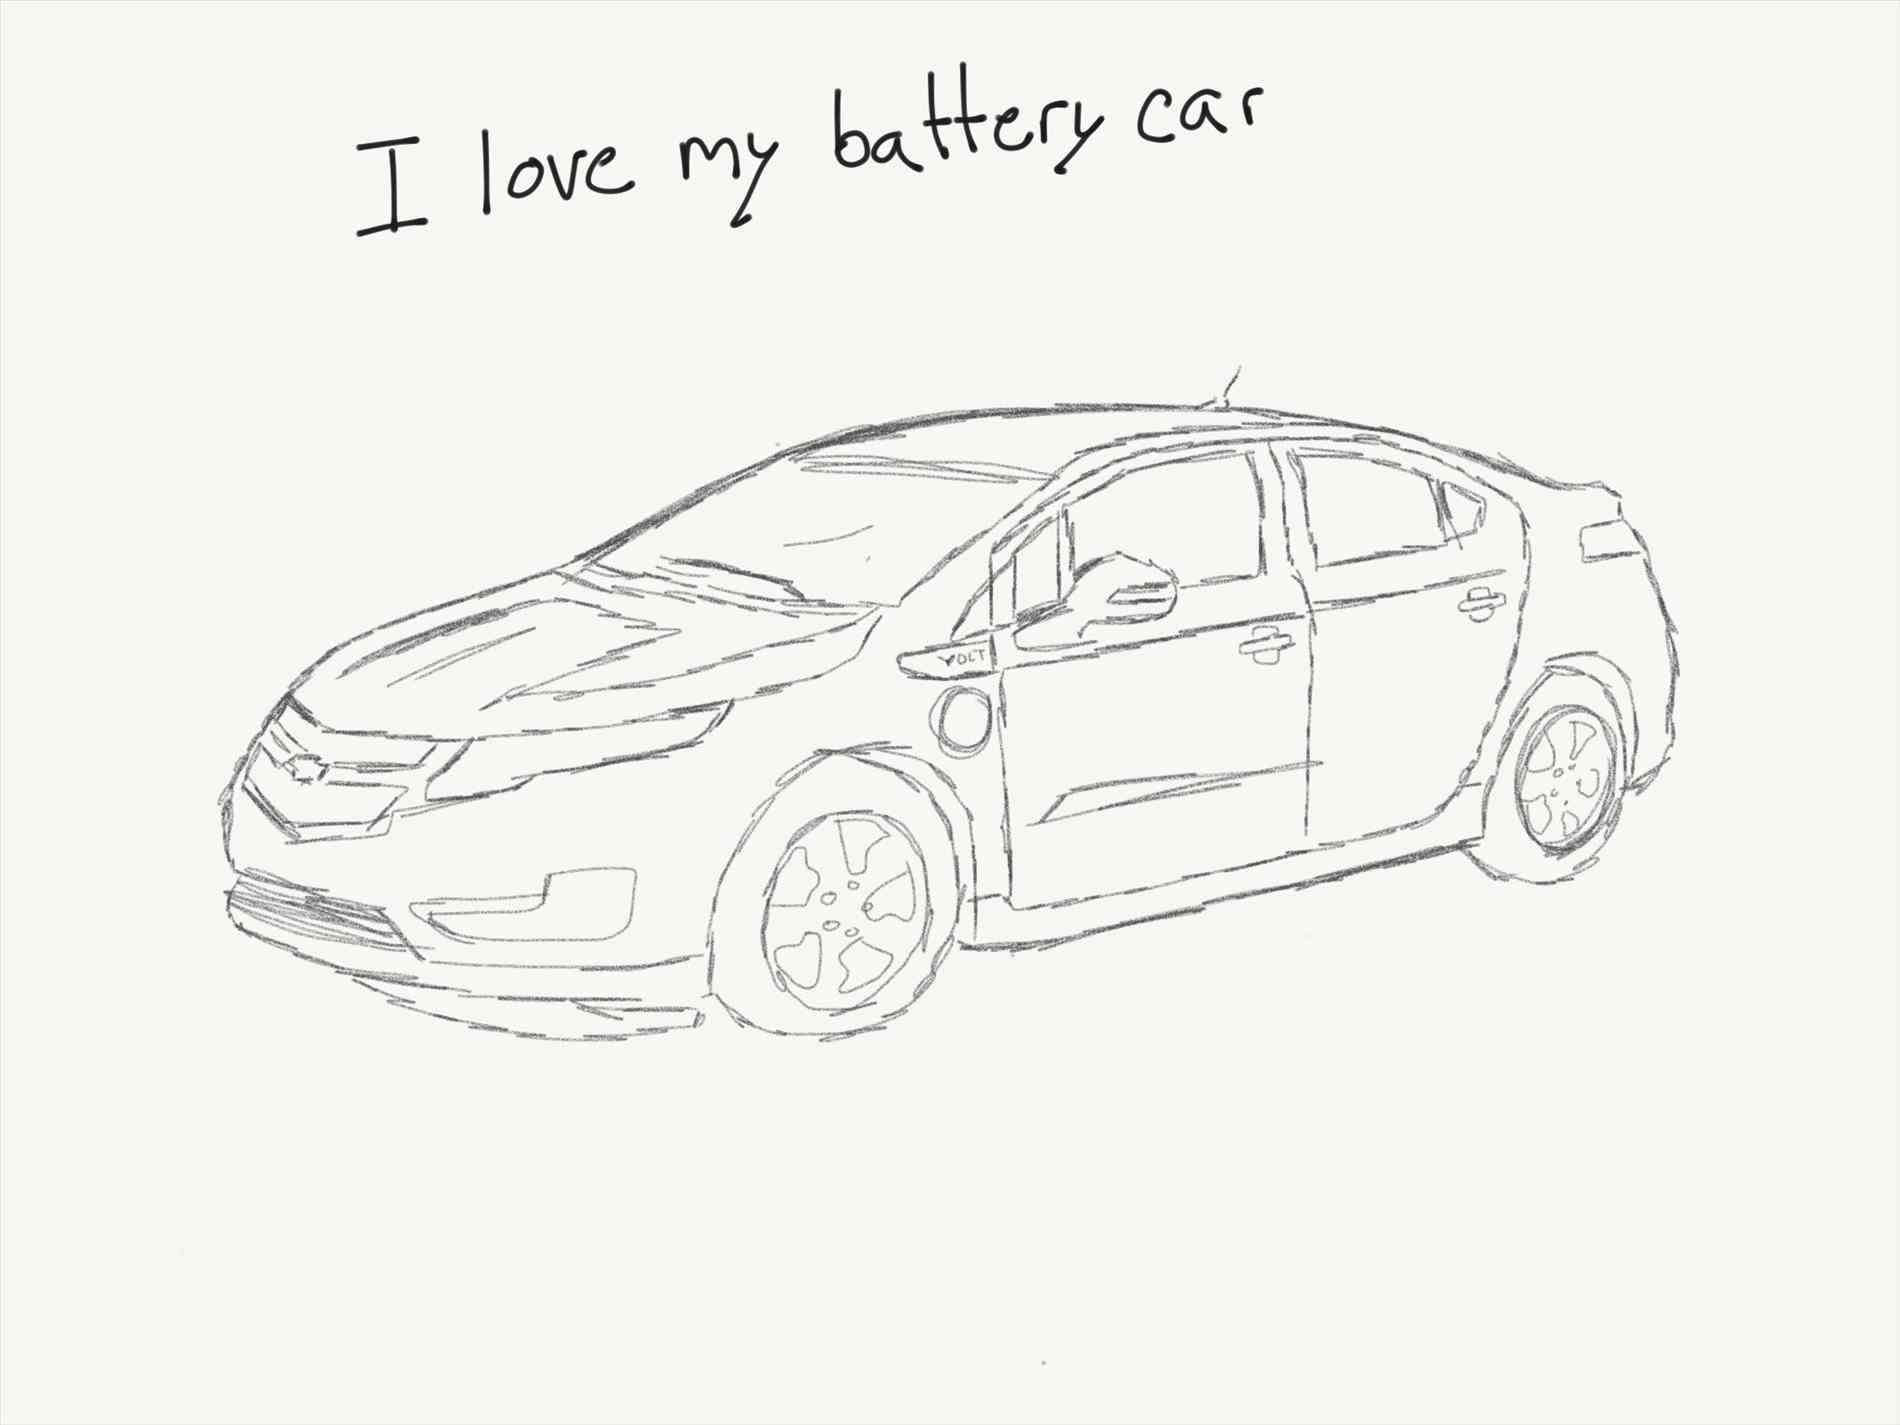 hight resolution of 1900x1425 at getdrawingscom free for personal use rhgetdrawingscom vector car battery sketch